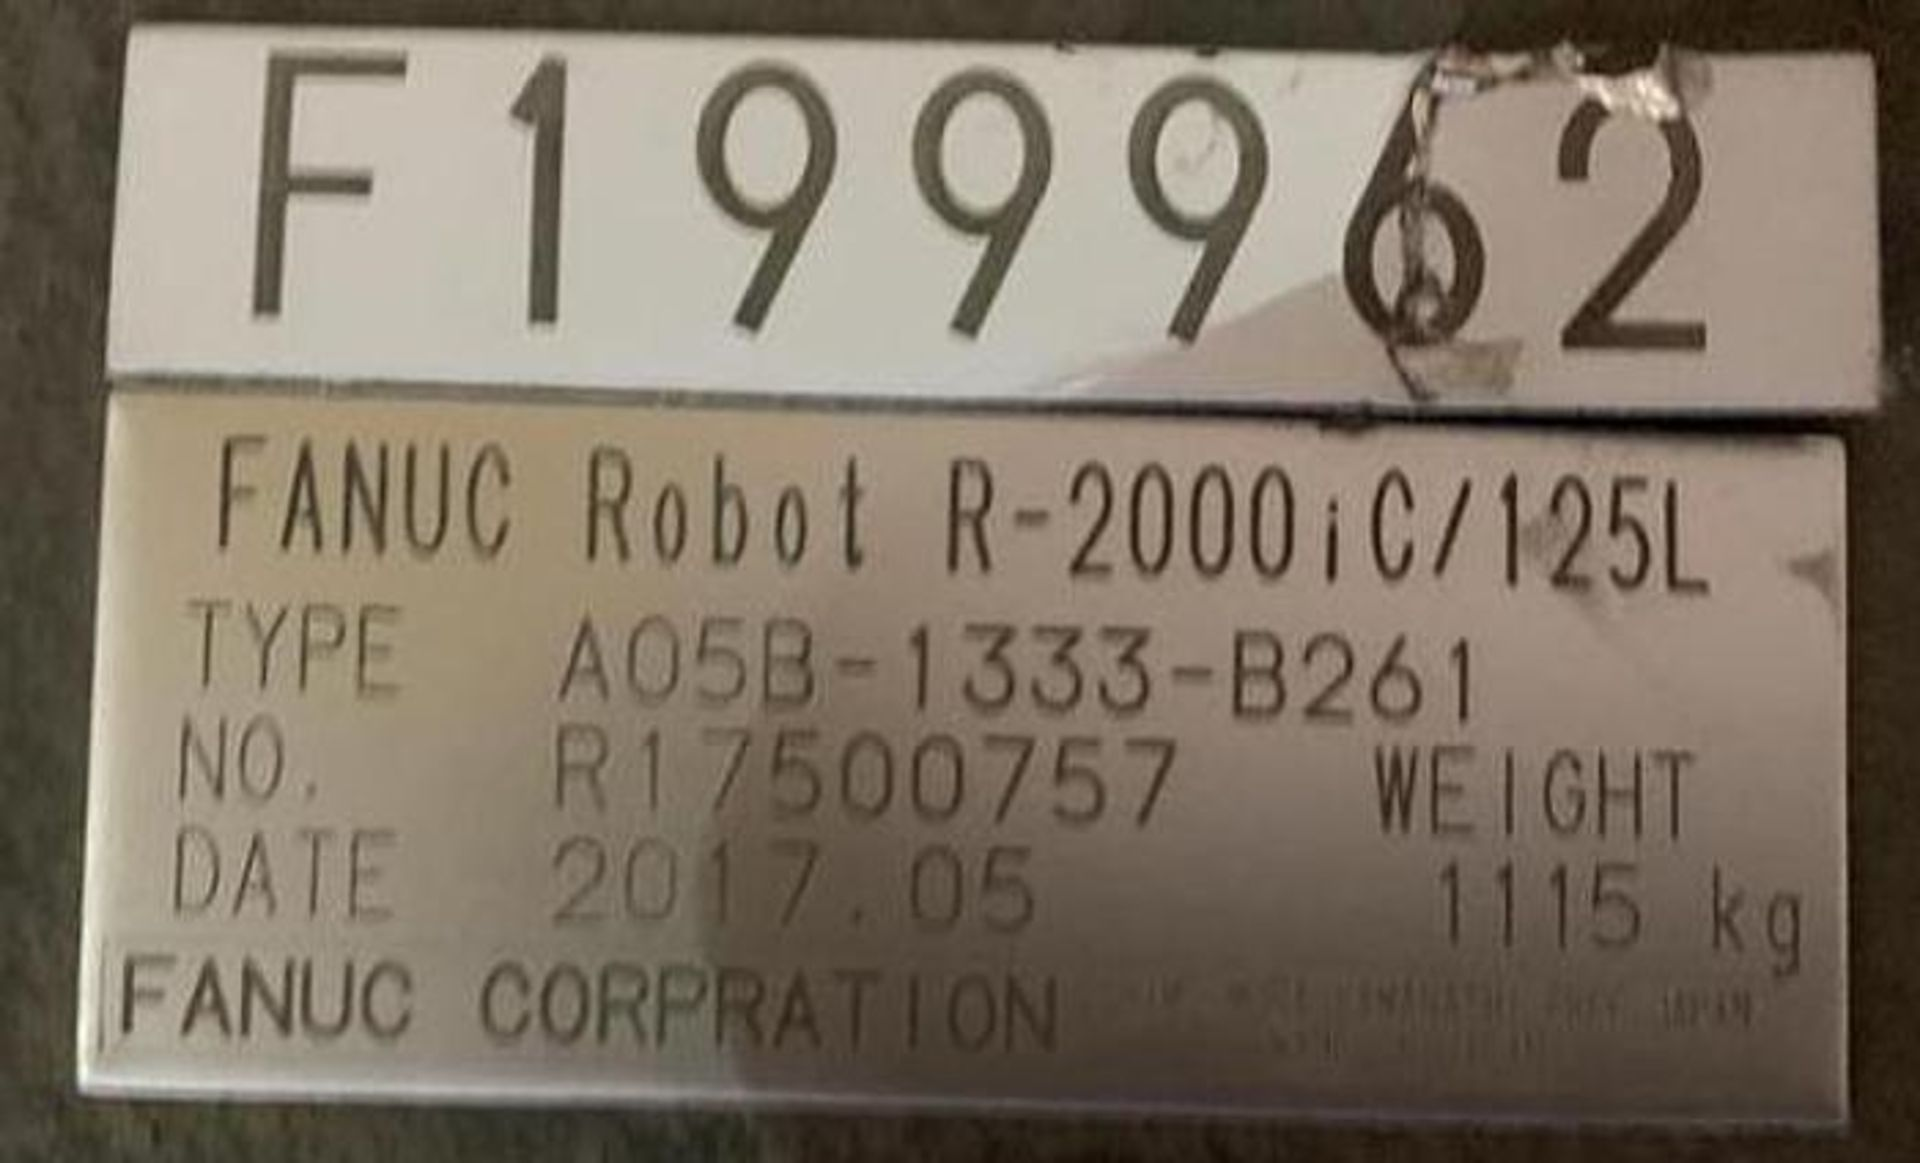 FANUC R2000iC/125L 6 AXIS CNC ROBOT WITH R30iB CONTROLLER, IR VISION, CABLES & REACH - Image 13 of 17